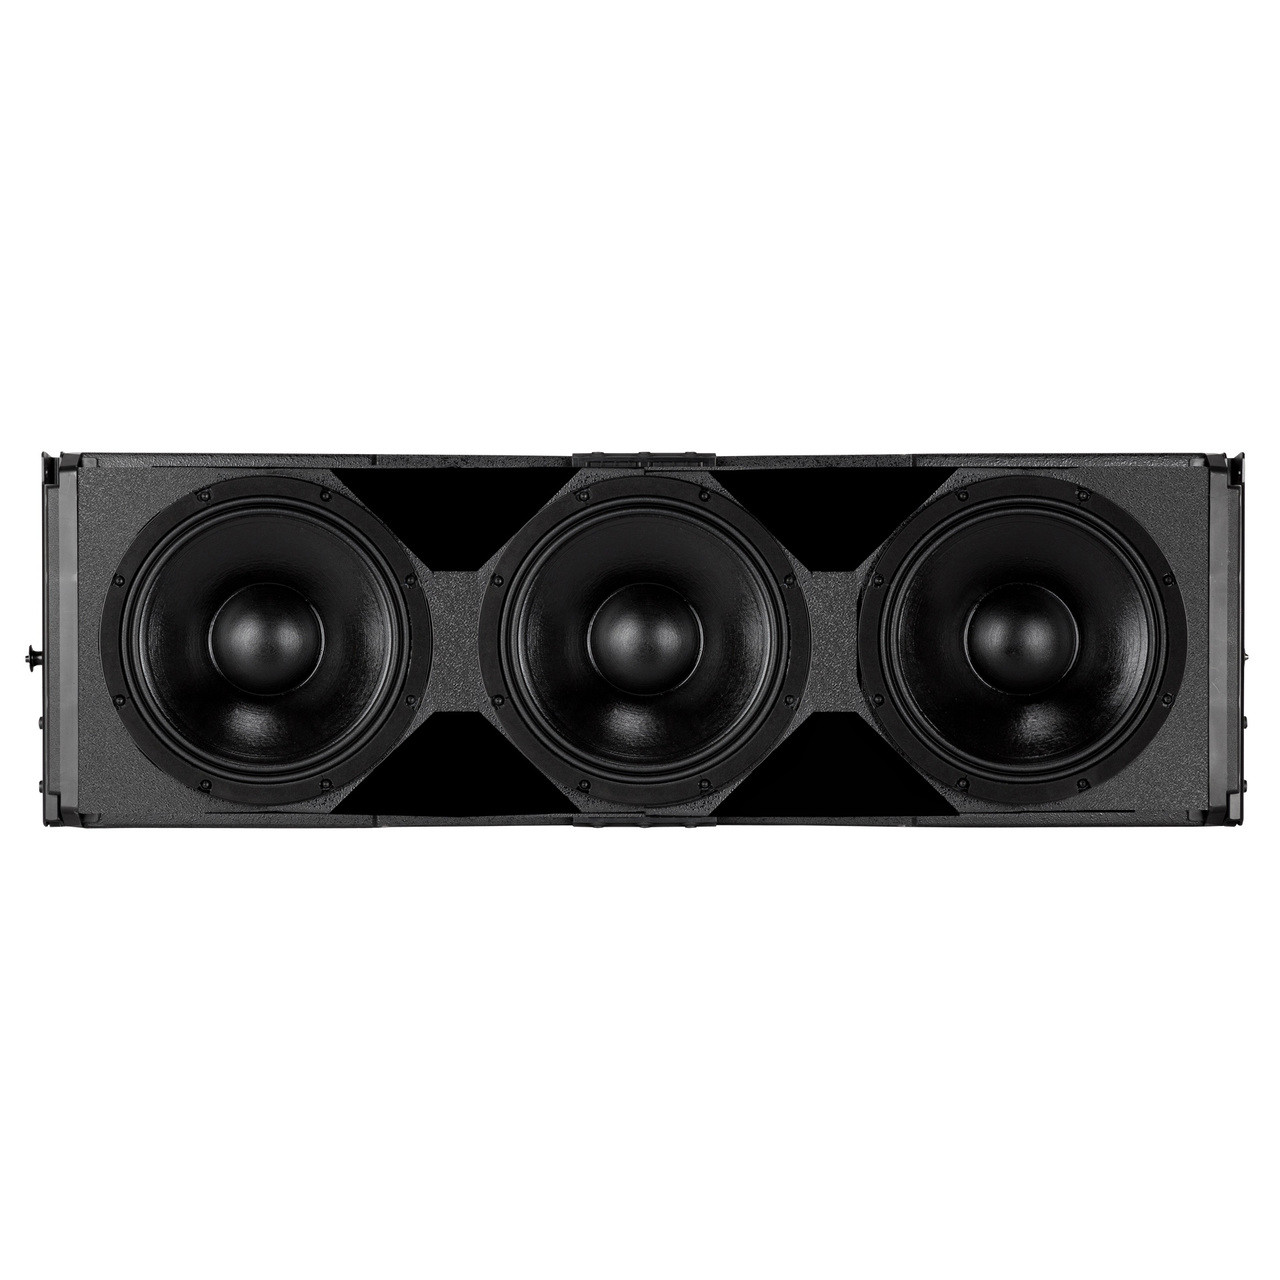 Rcf Hdl 53 As Active 3x12 Inch High Powered Bass Module